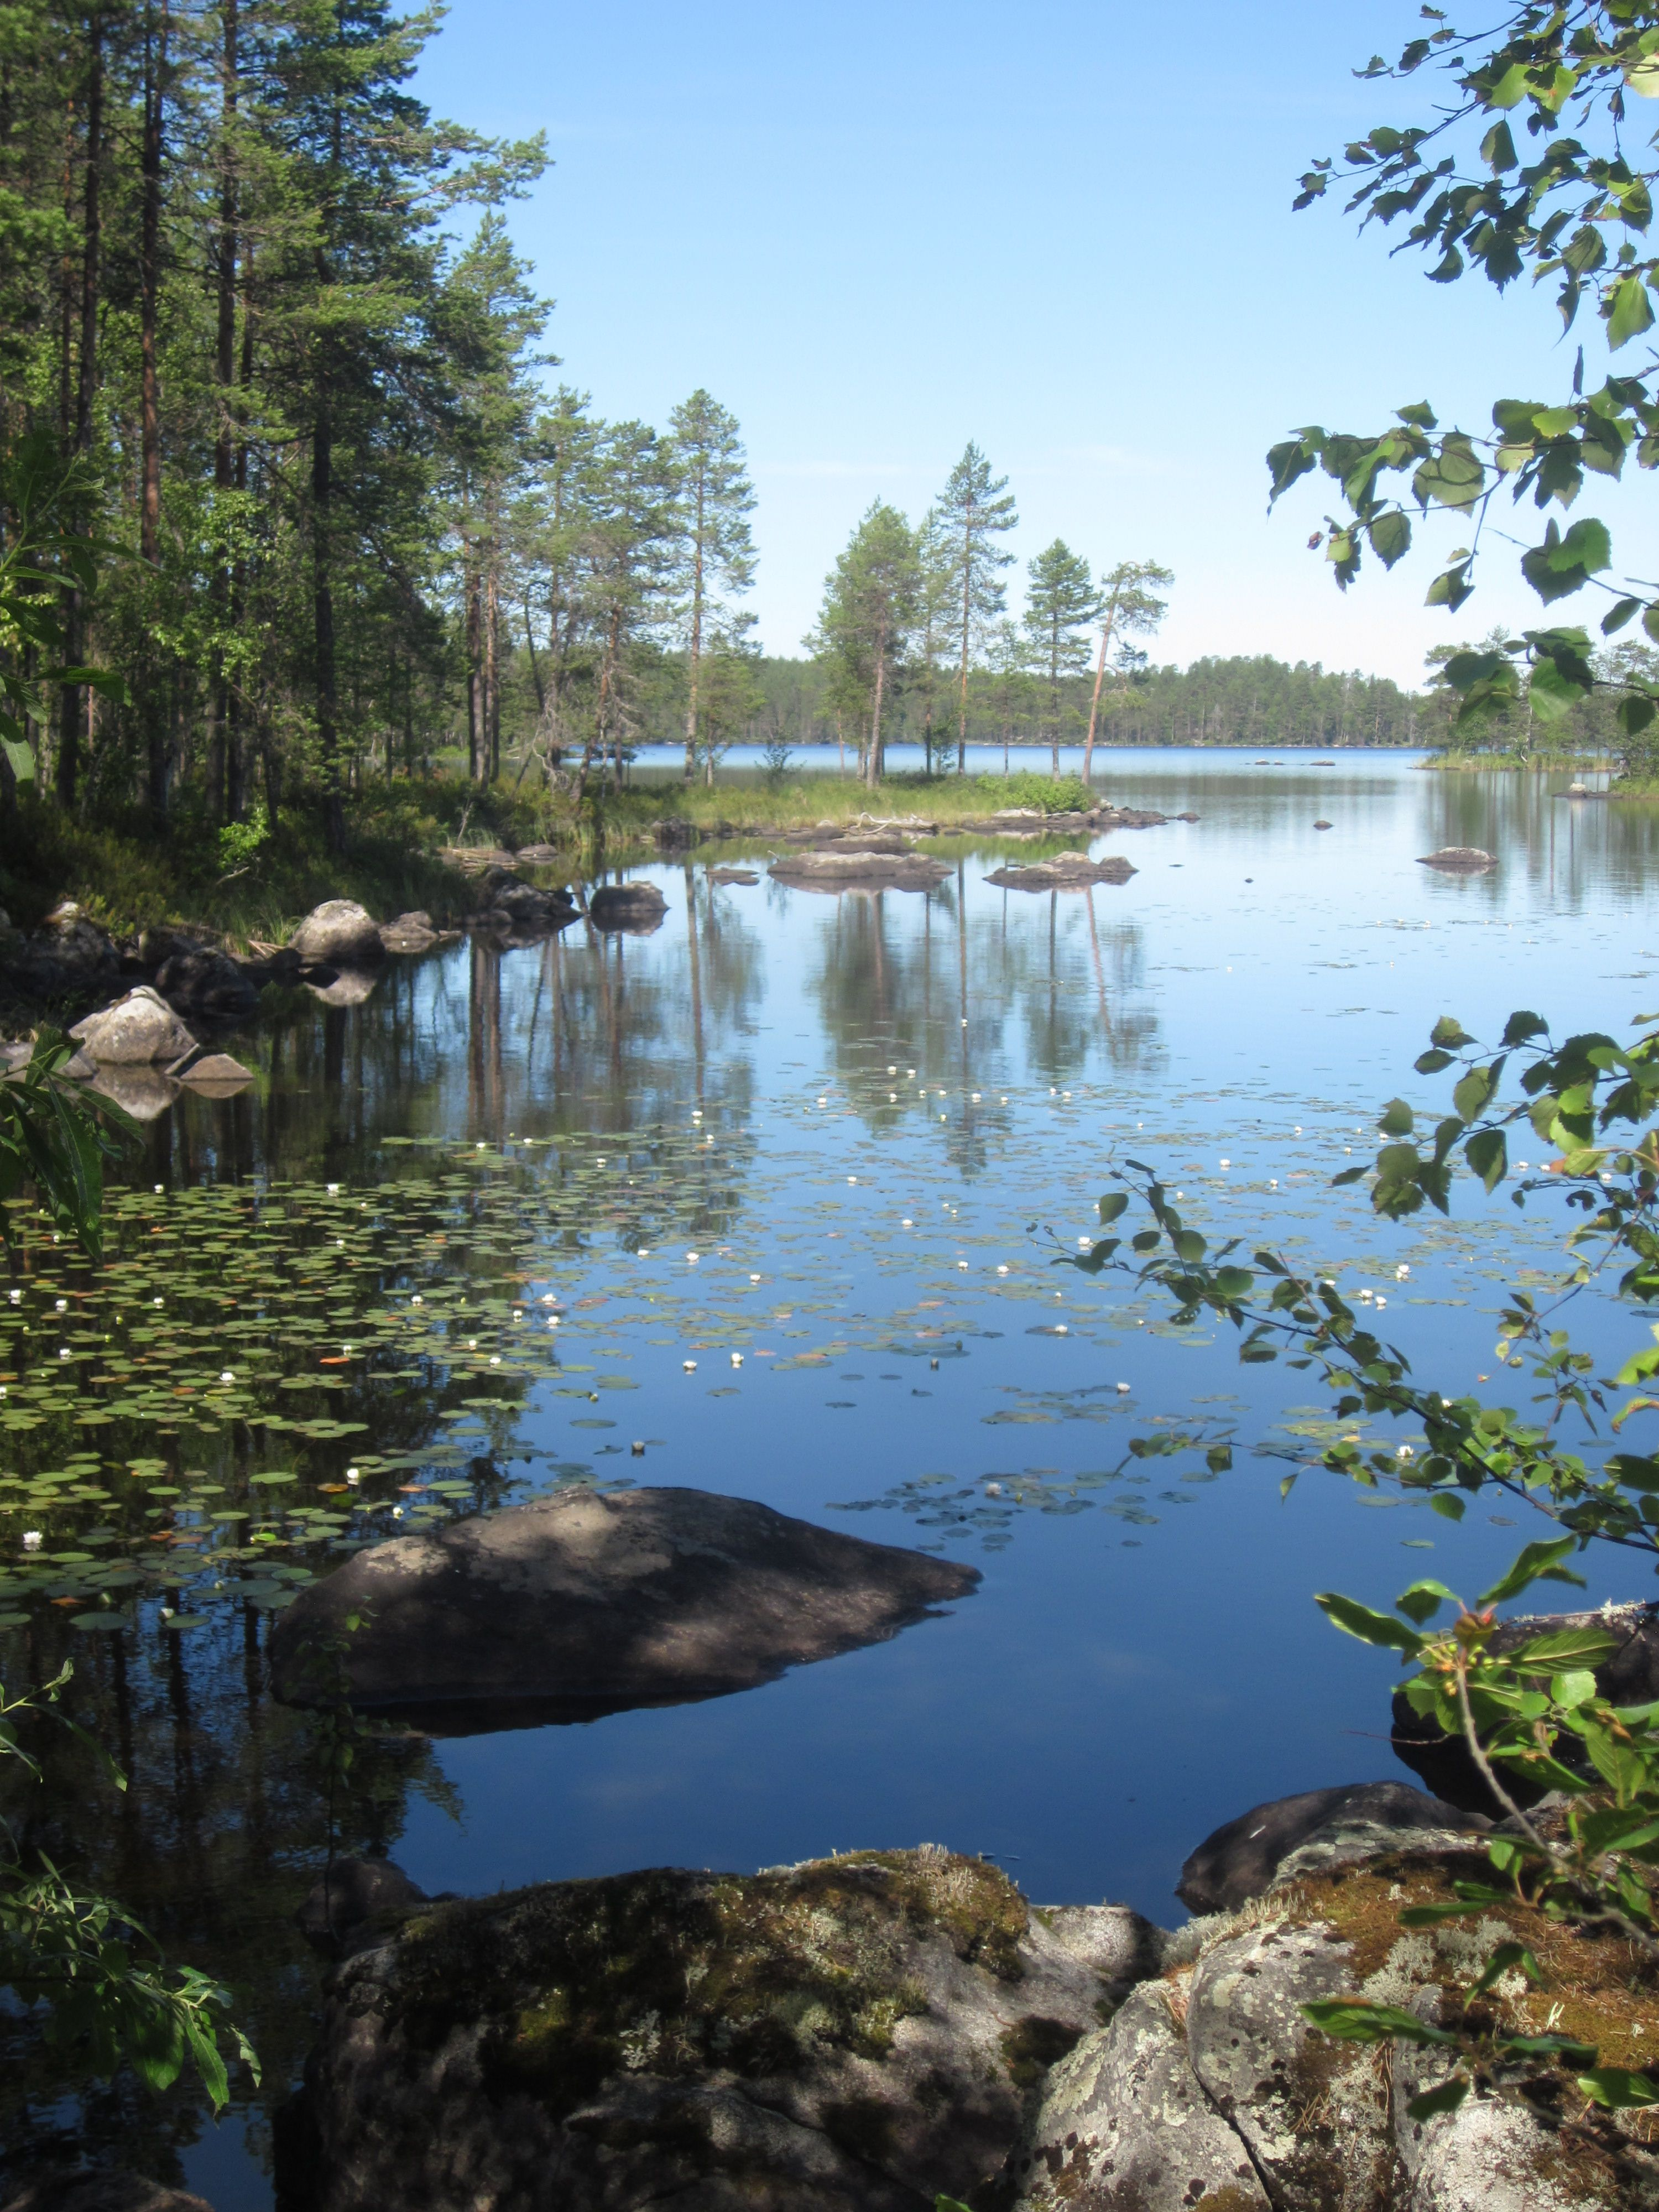 lovely summer moment in Salamajärvi National Park in Kivijärvi #Kivijaervi #Salamajaervinationalpark #summer